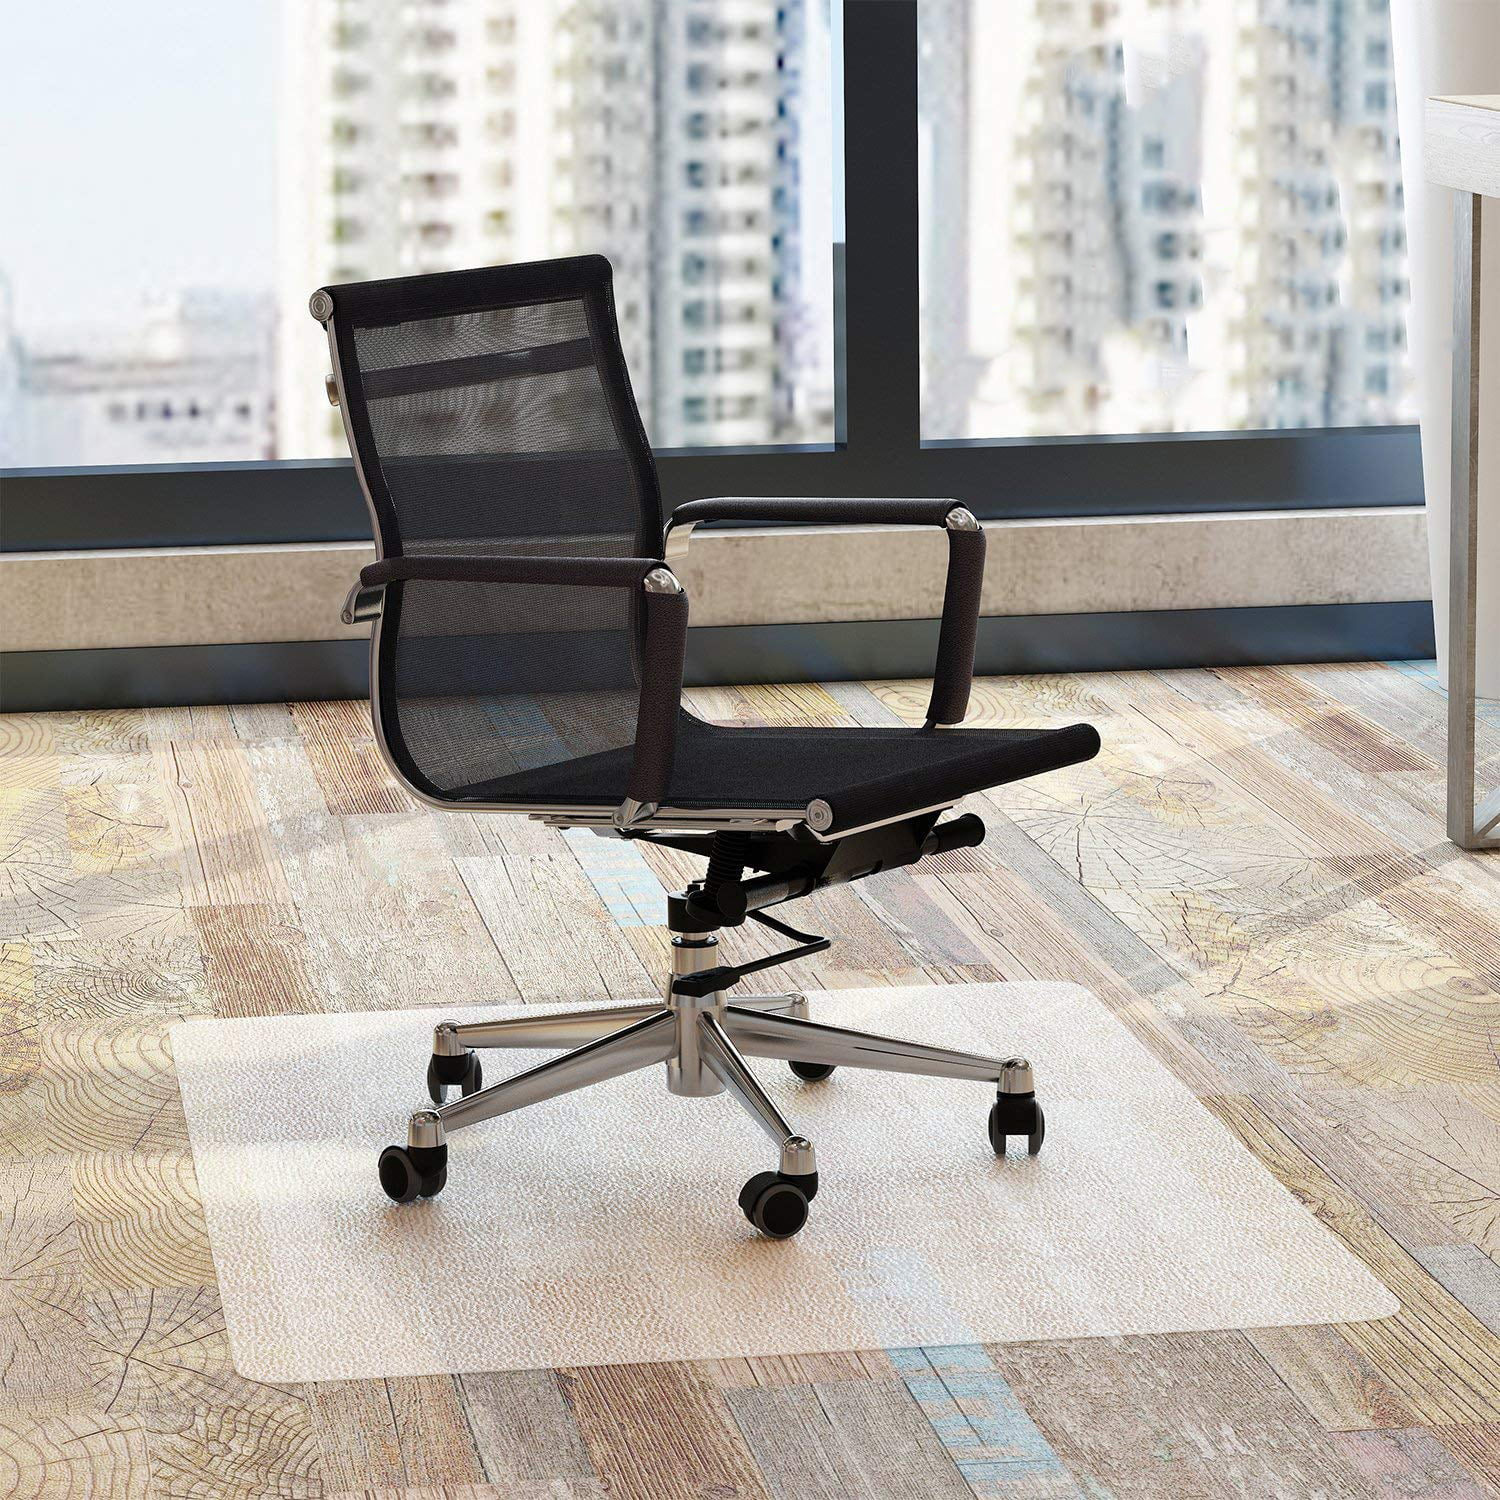 Ubesgoo Chair Mat Office For Hardwood Floor Mats For Desk